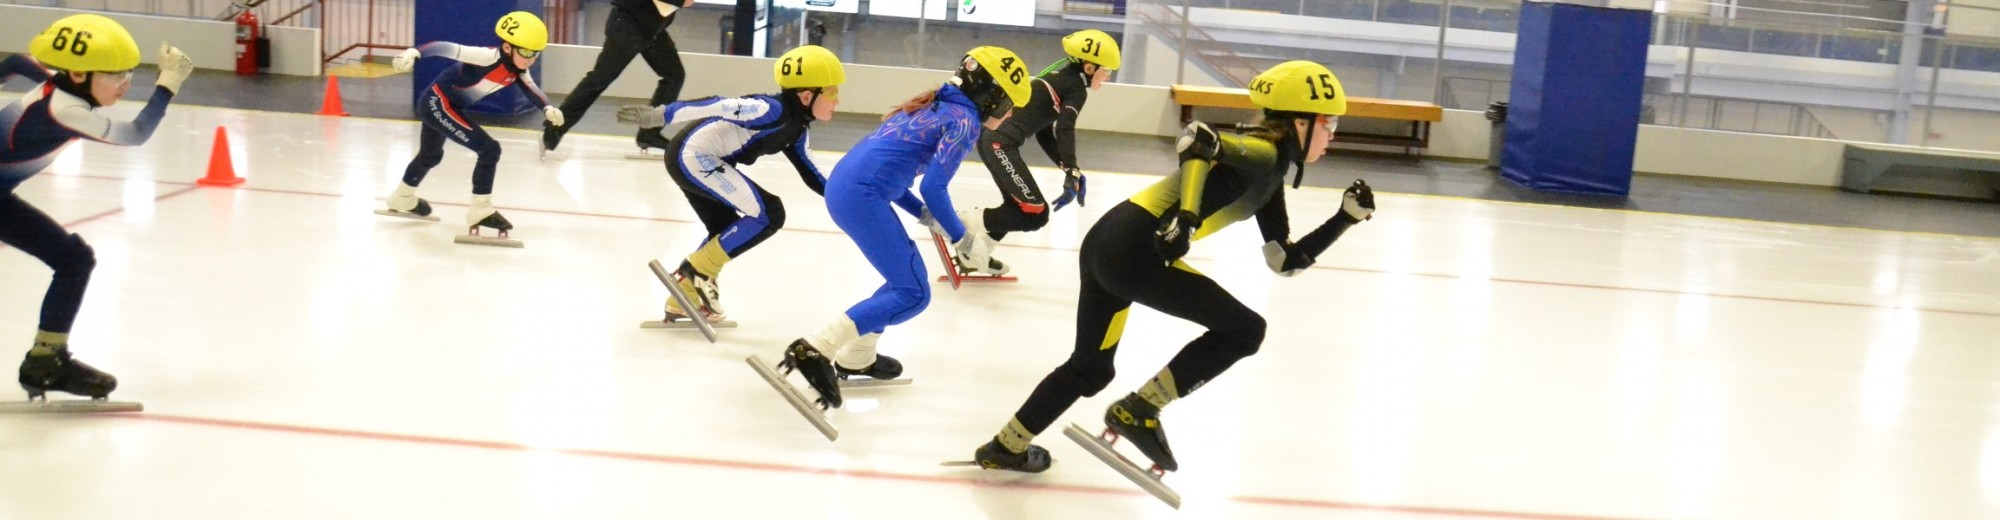 FORT ST JOHN ELKS SPEED SKATING CLUB